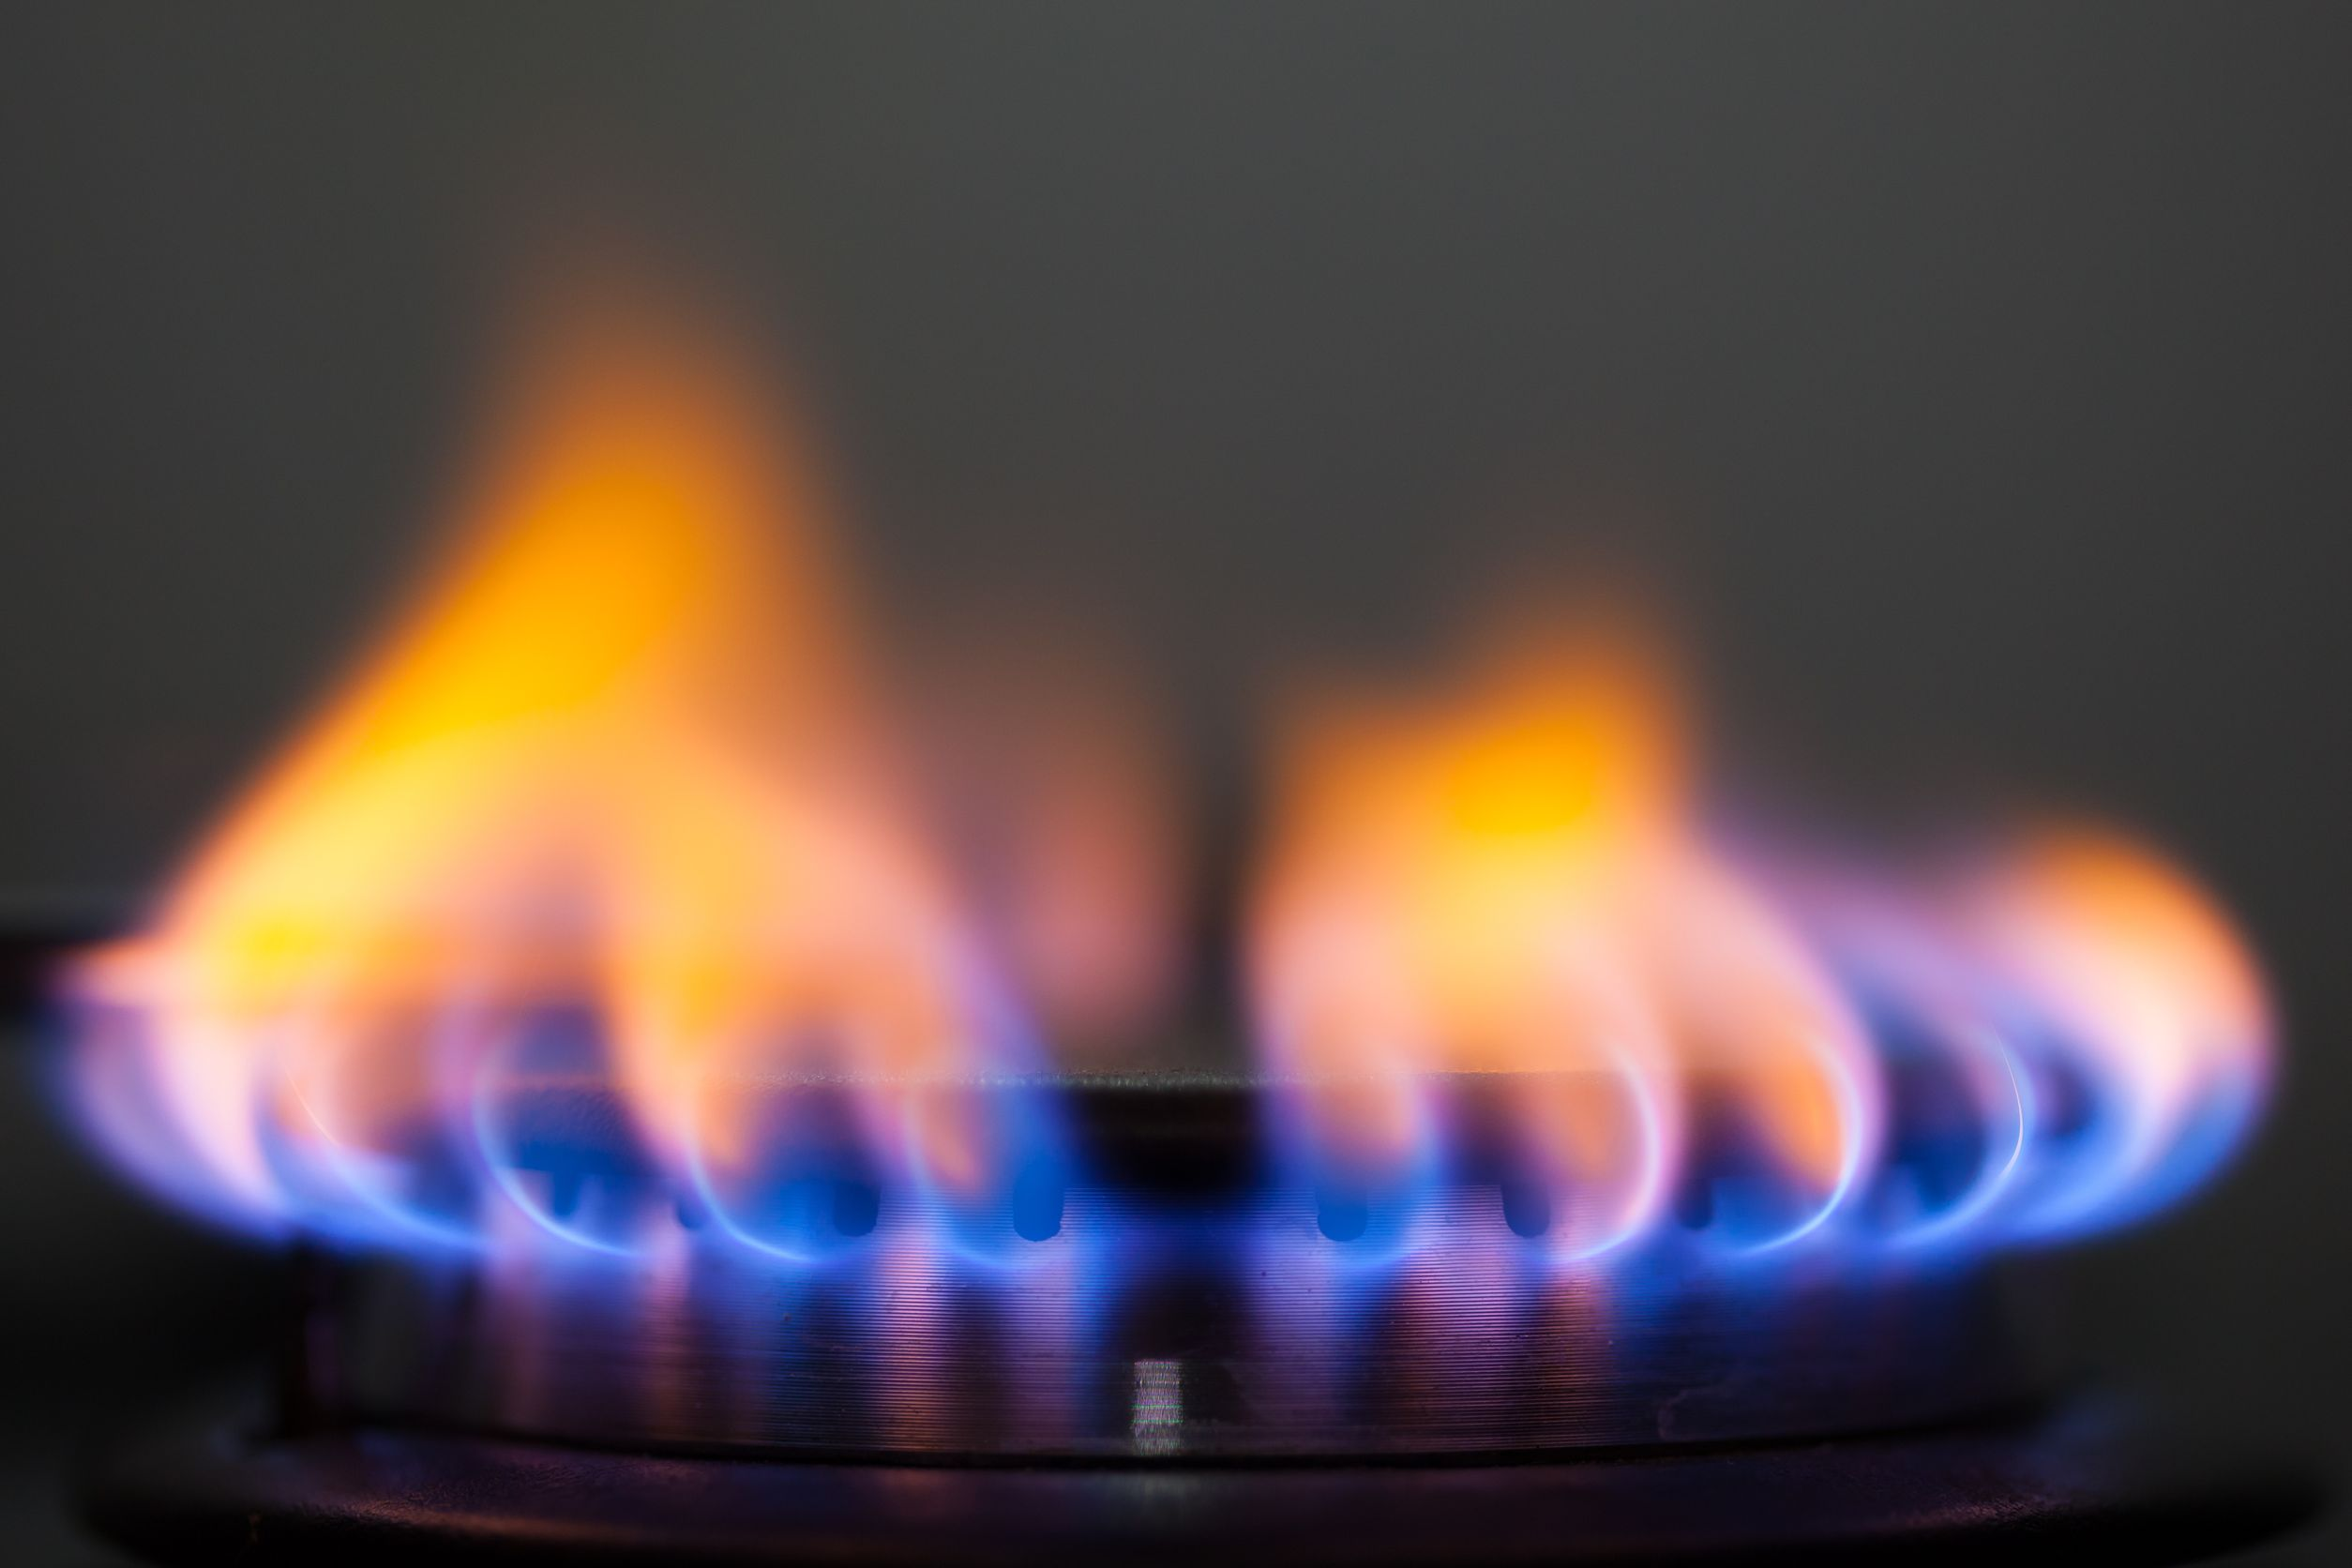 Range burners not heating? Call the Stove and Range experts at Kirch Appliance